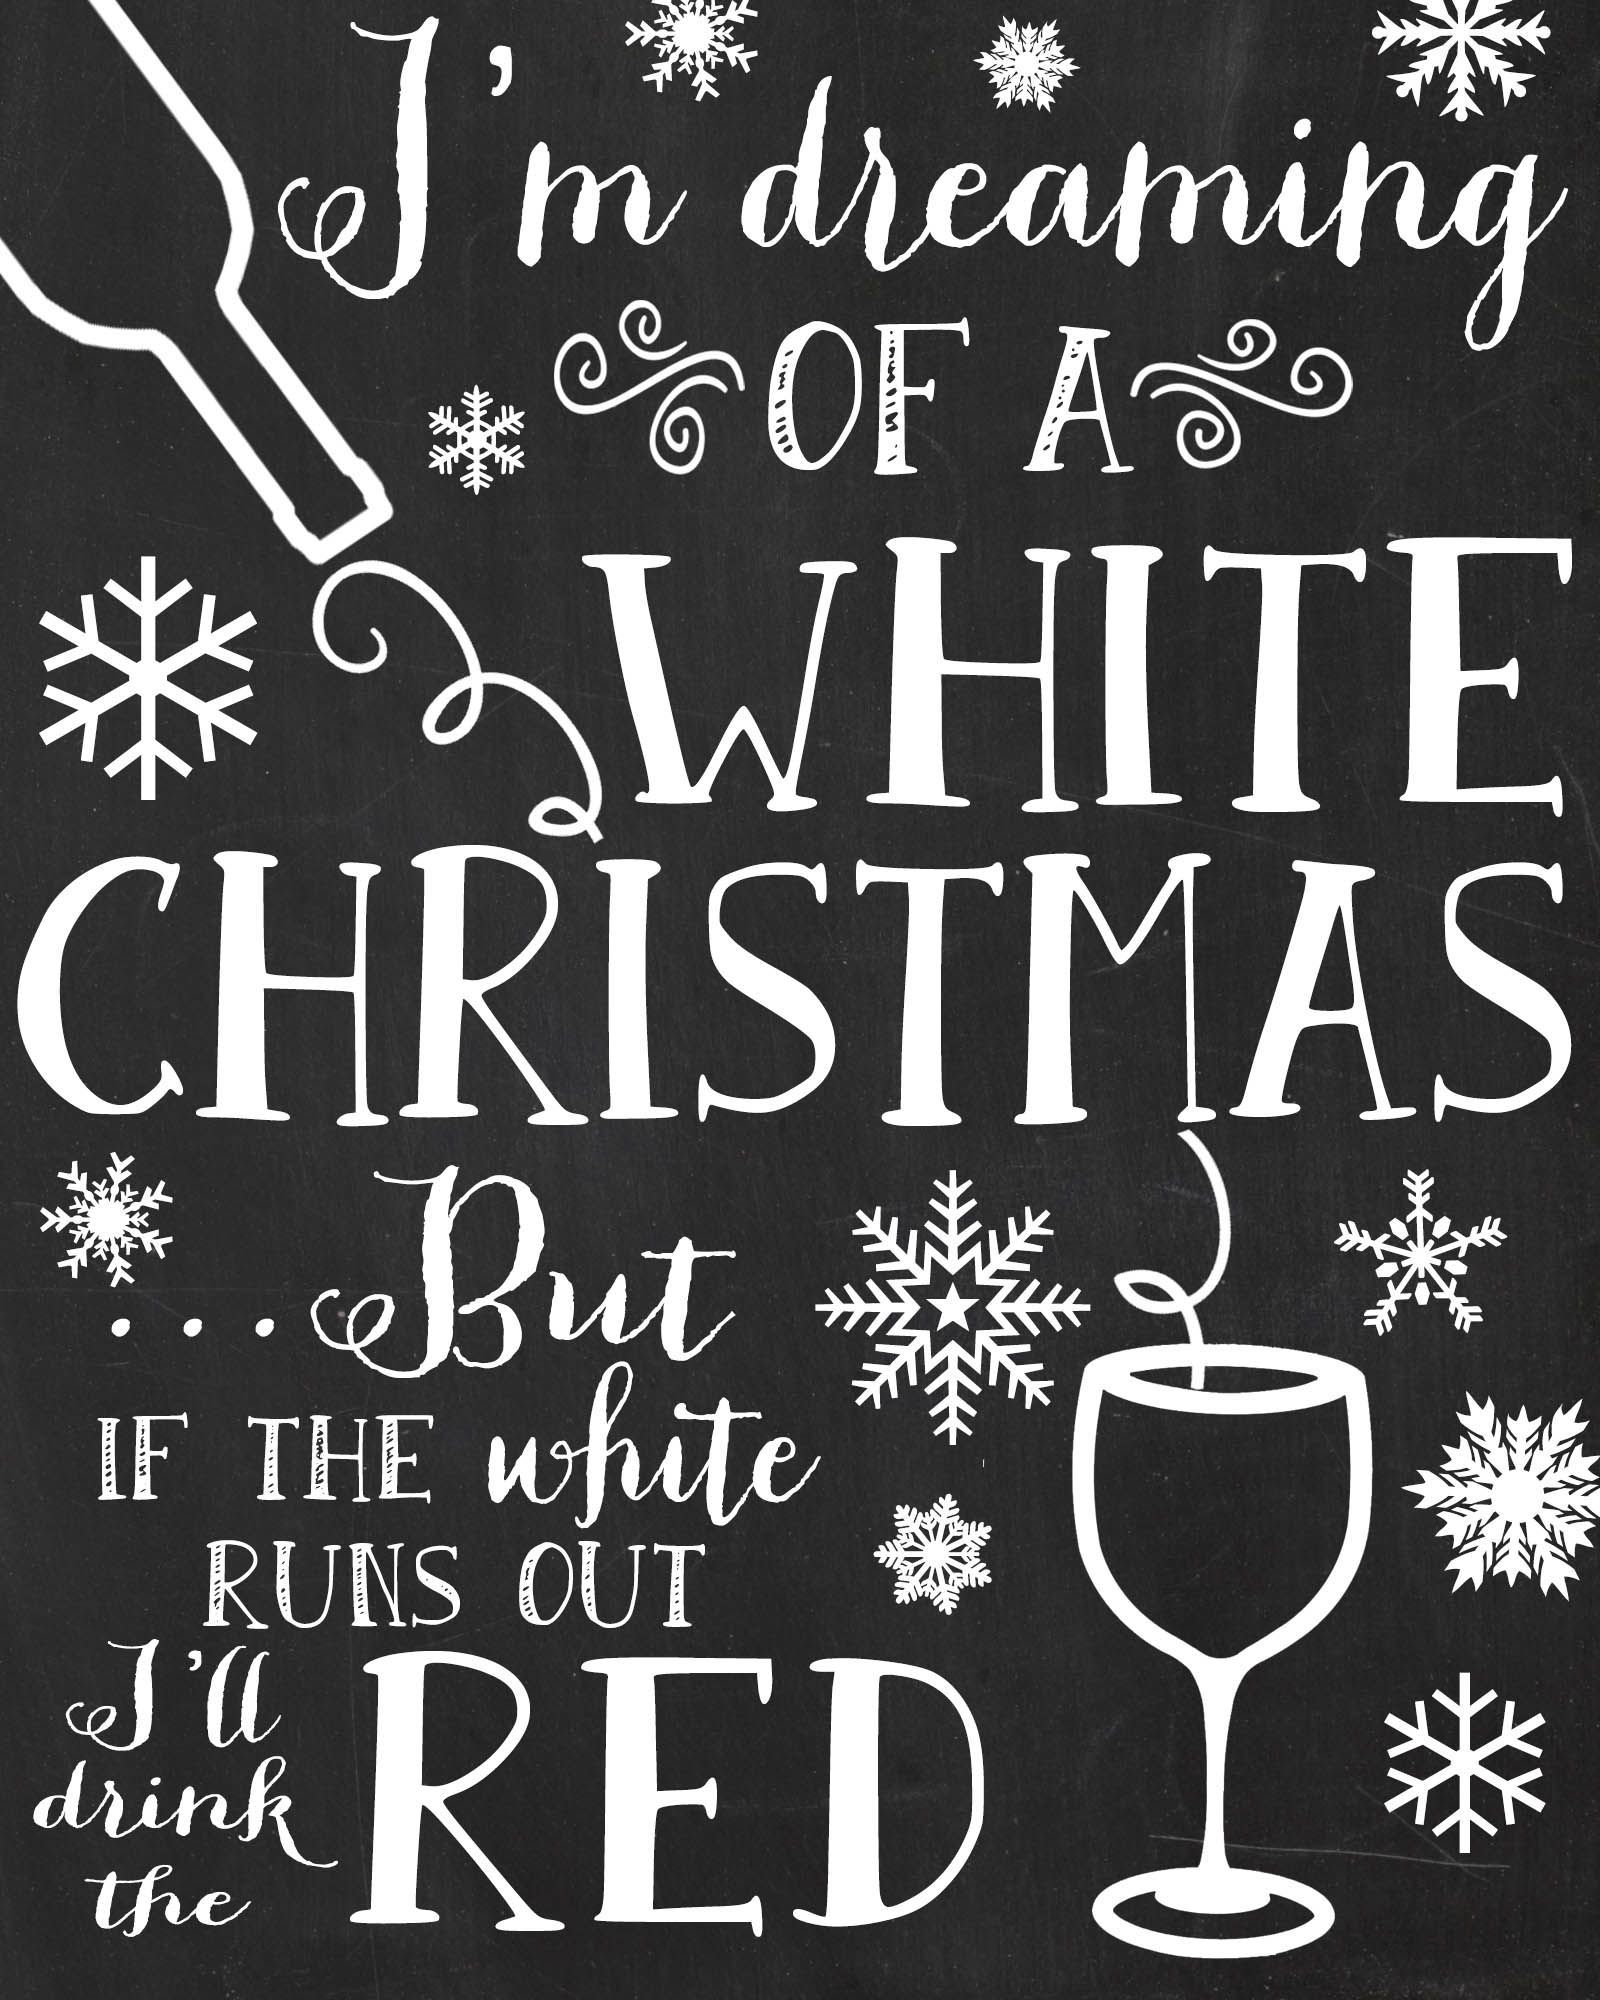 Dreaming Of A White Christmas.Pin On Customized Chalkboard Posters